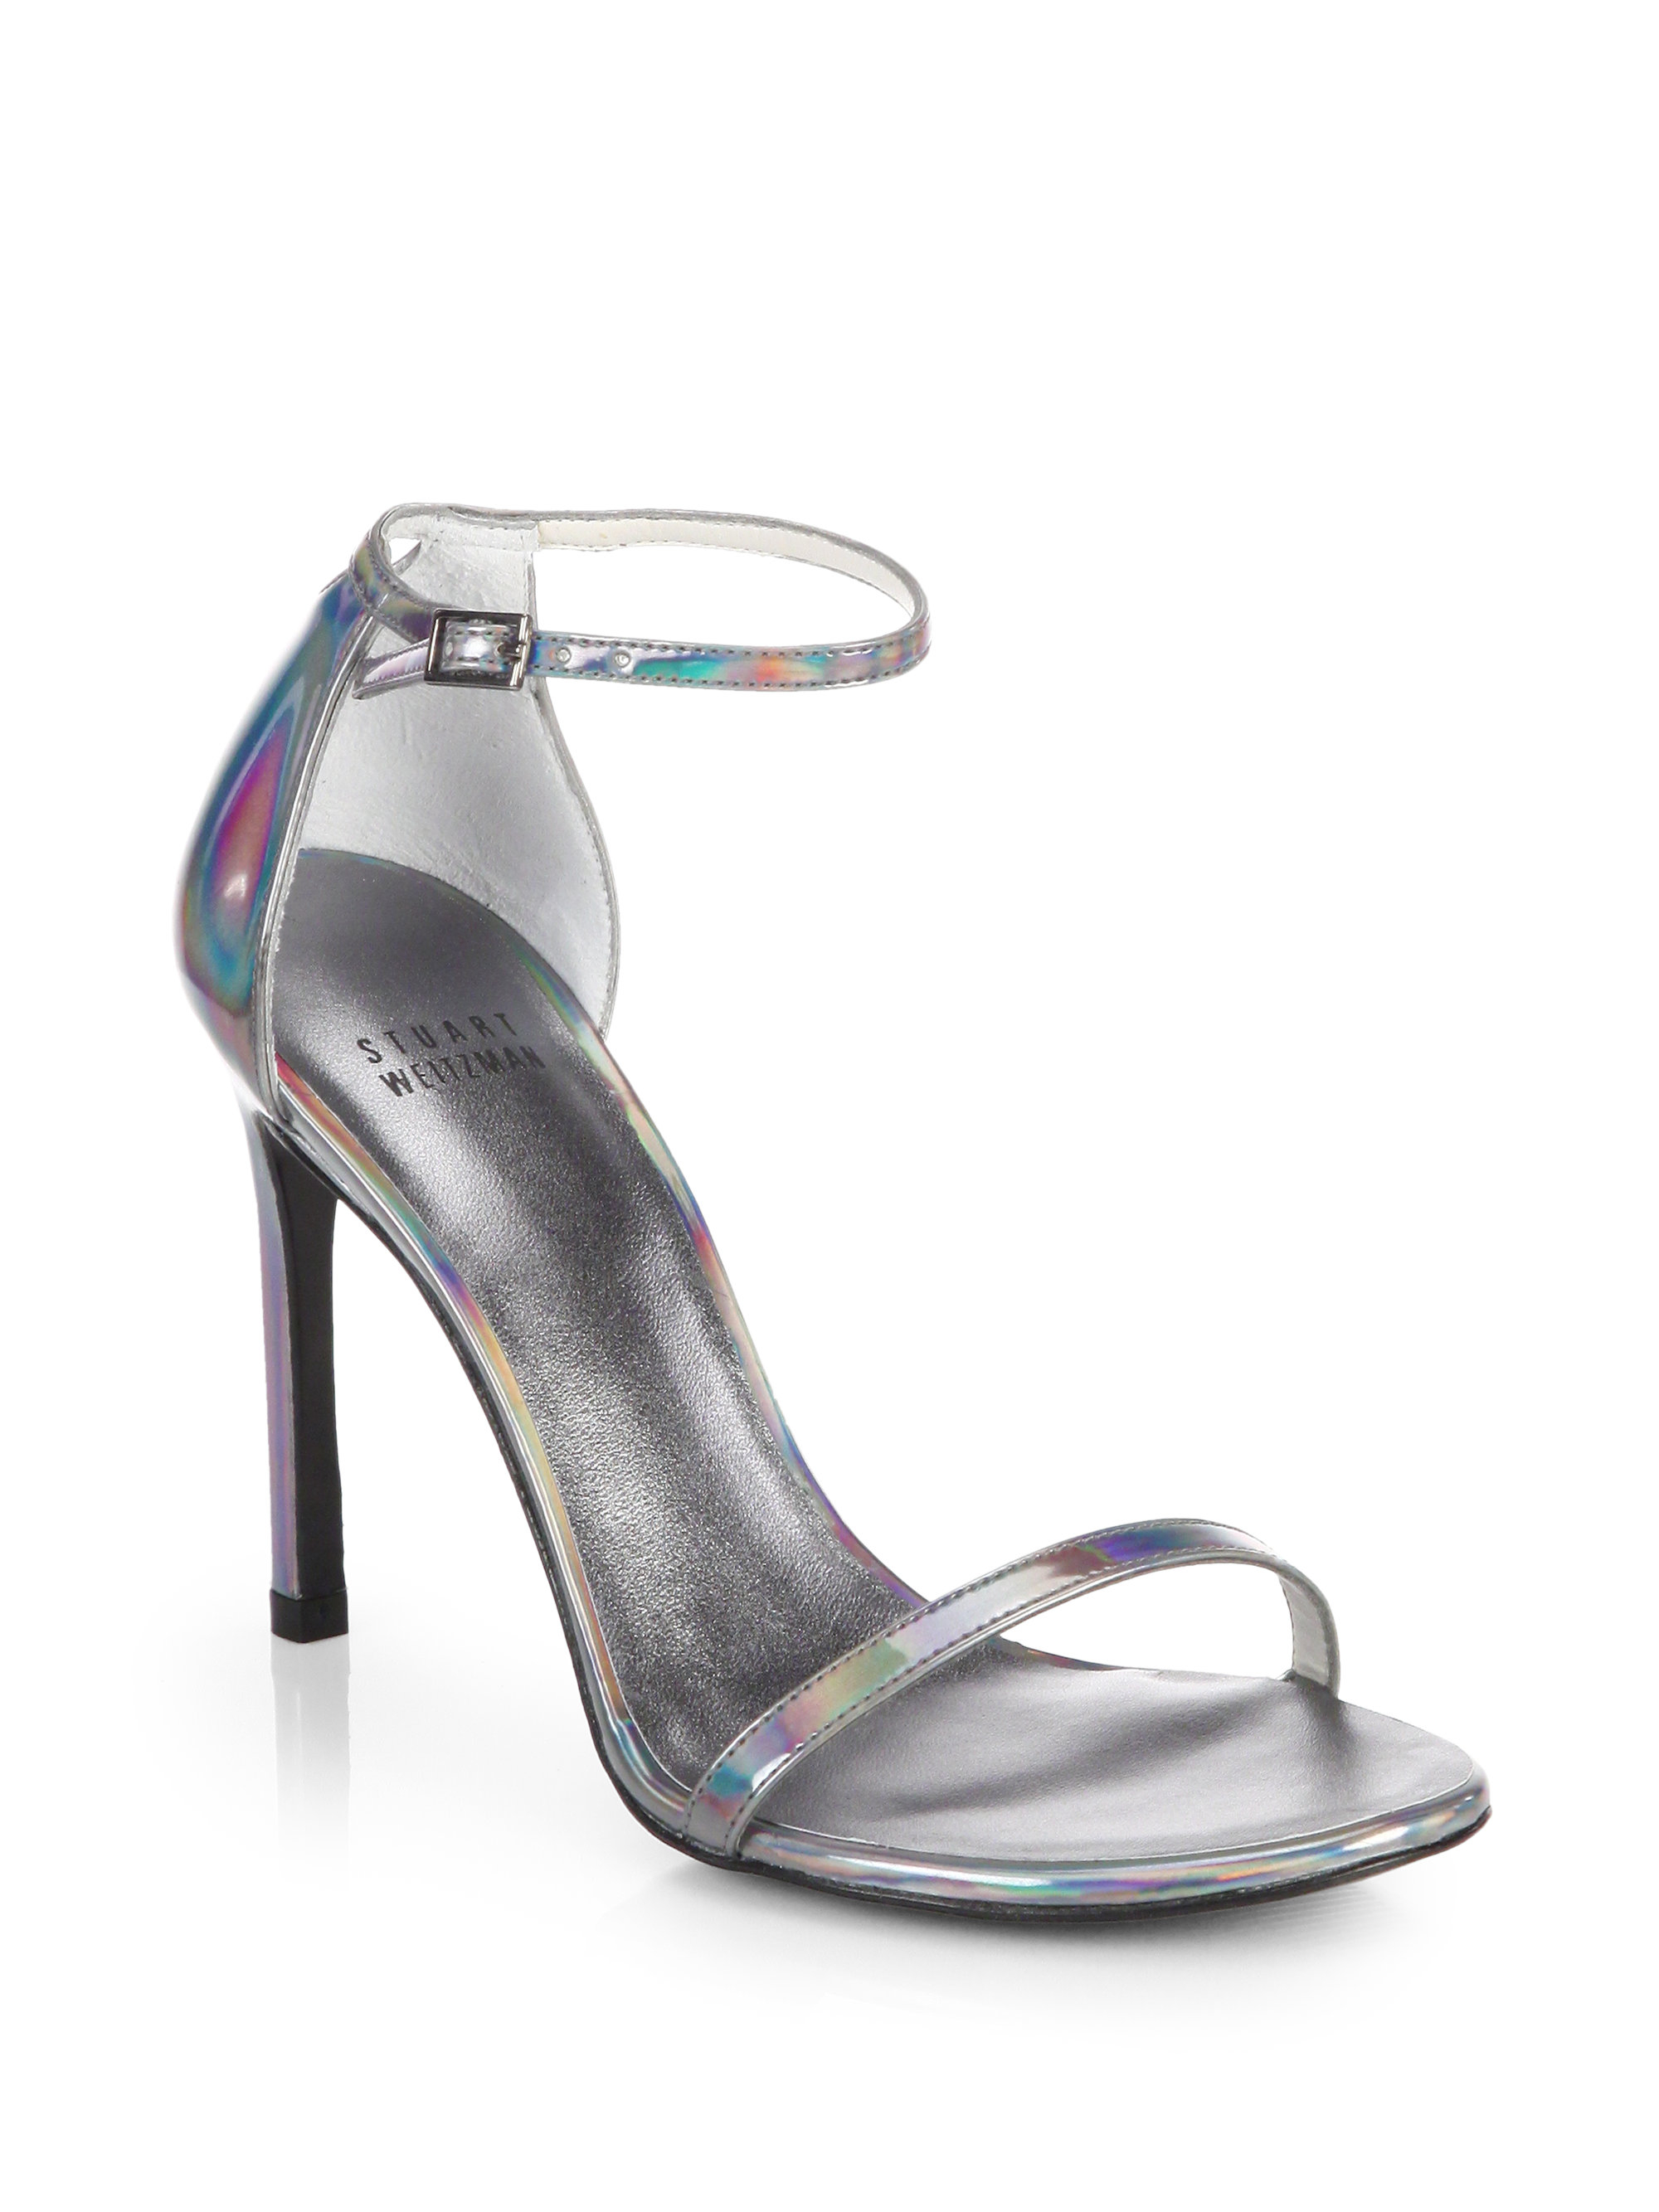 fashion Style cheap price discount pick a best Stuart Weitzman Metallic Patent Leather Sandals discount shopping online iQa40